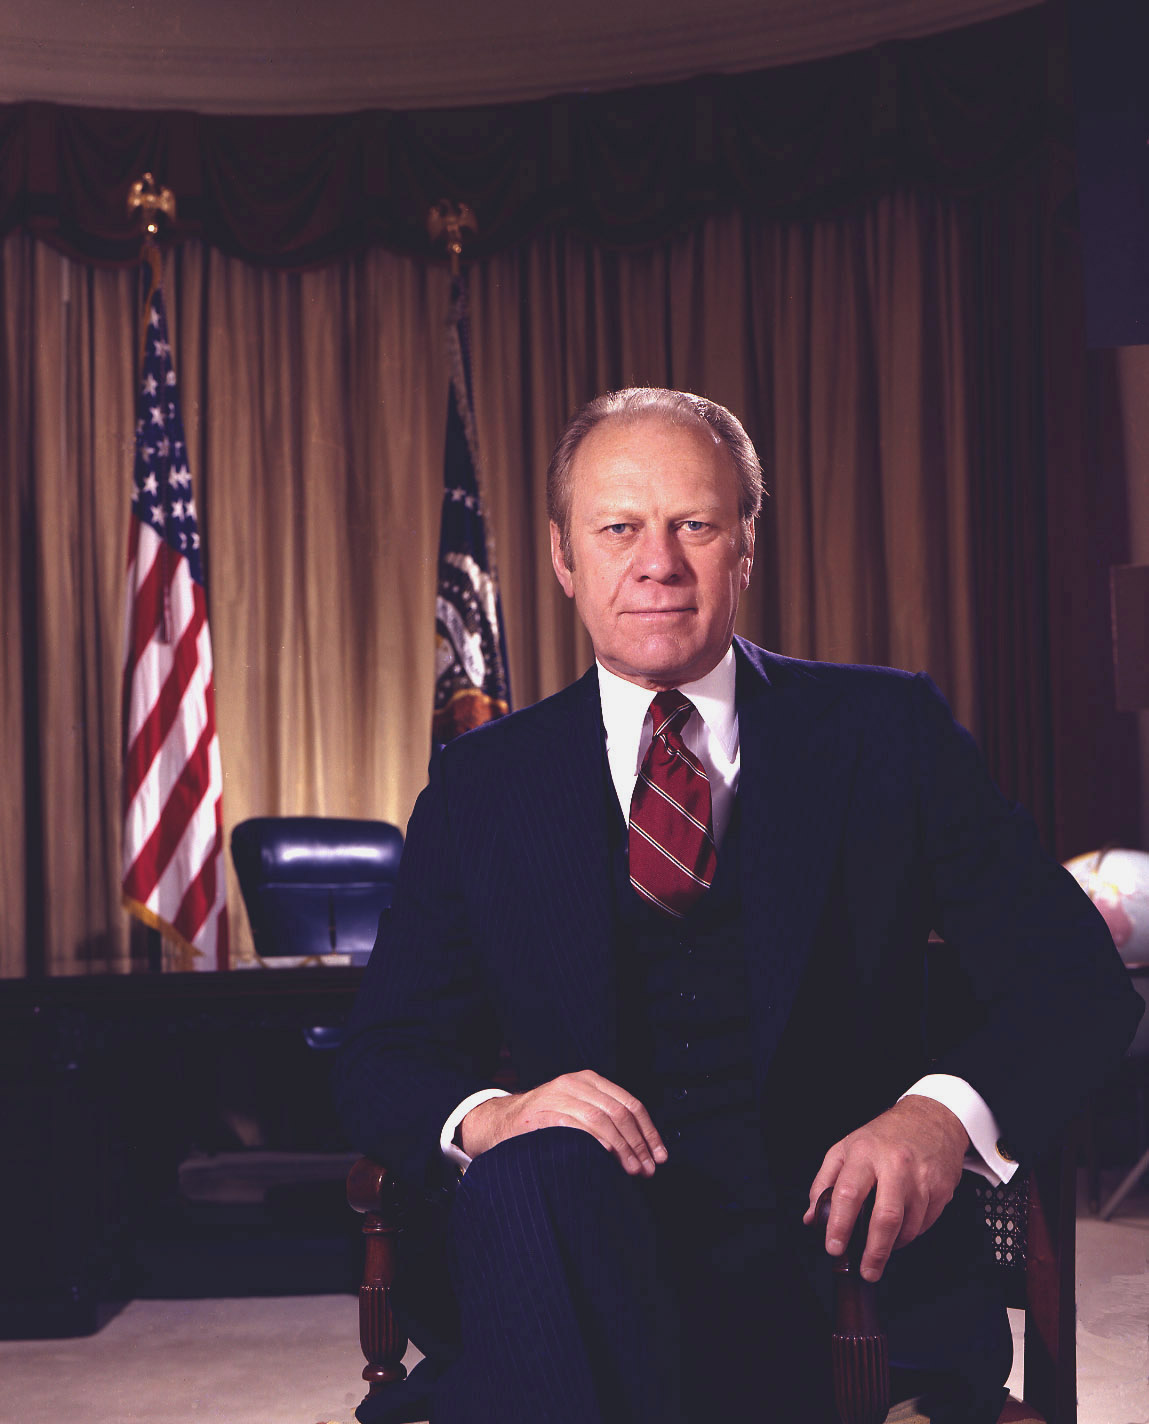 the presidency of gerald r ford When gerald r ford took the oath of office on august 9, 1974 as our 38th president, he declared, i assume the presidency under extraordinary circumstance.